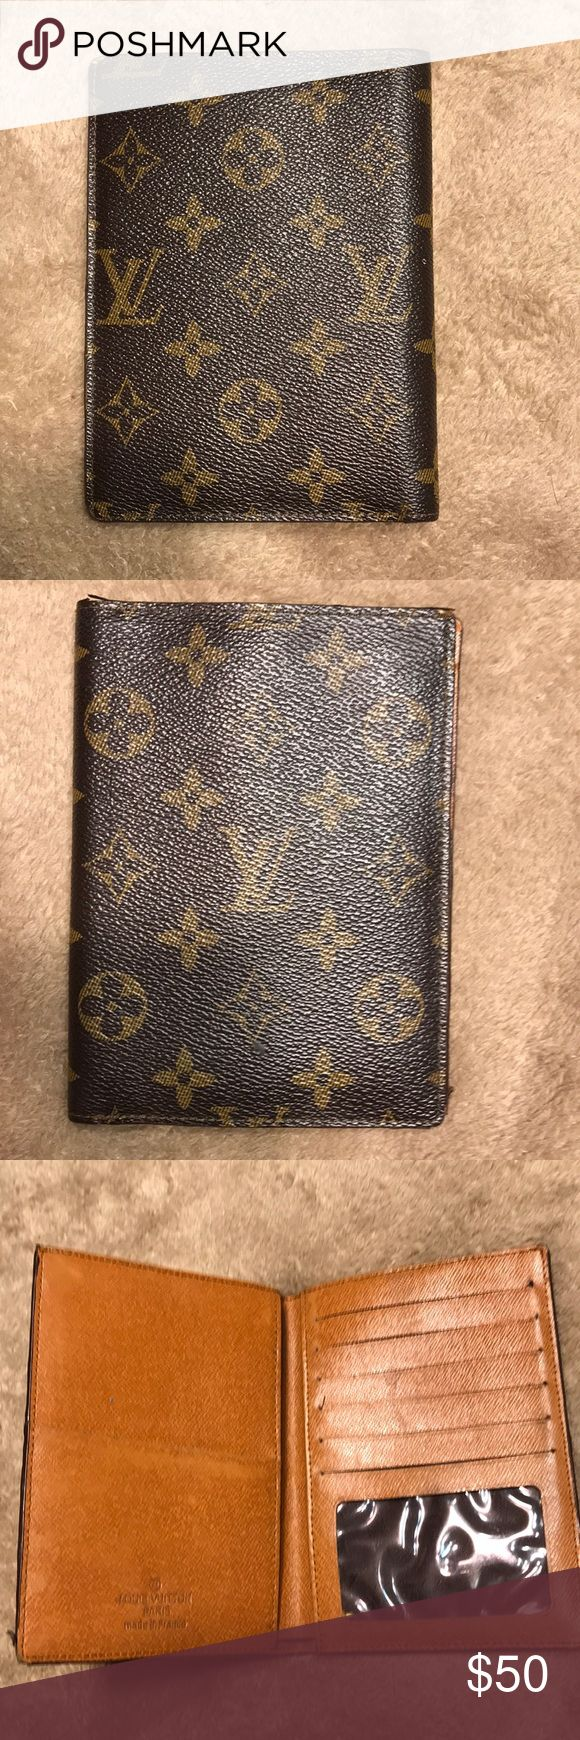 Bootleg LV passport holder/wallet Bootleg LV passport holder  ~ minor wear shown in pictures  ~offers welcome  ~ please ask any questions Louis Vuitton Accessories Key & Card Holders